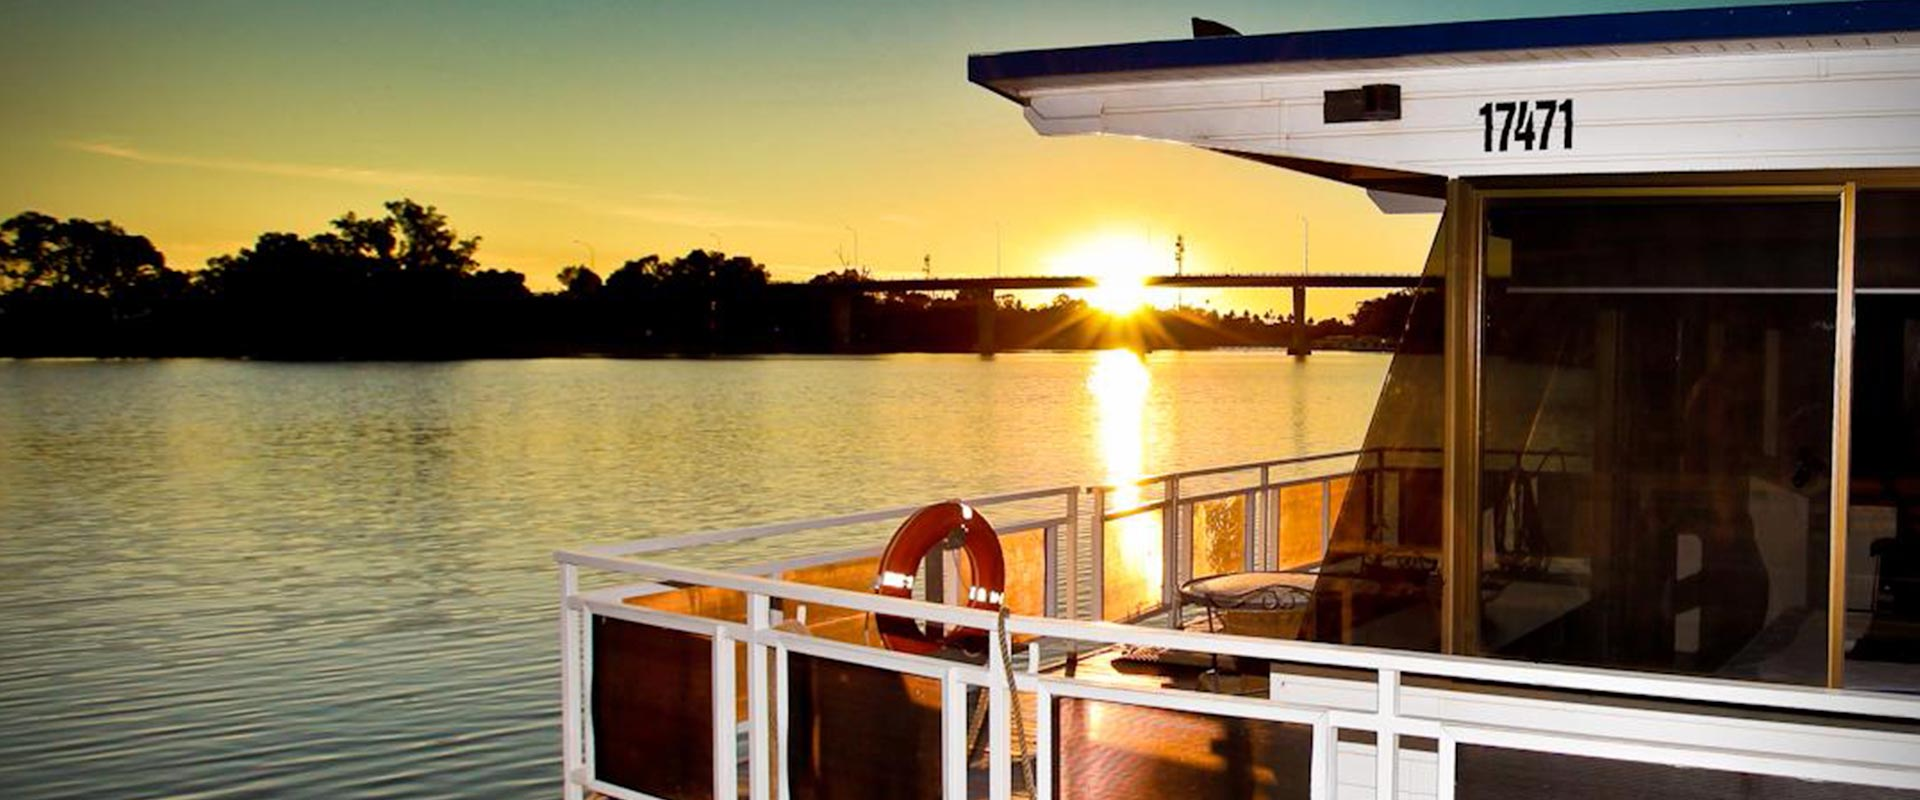 Sunset on the Murray River Houseboat